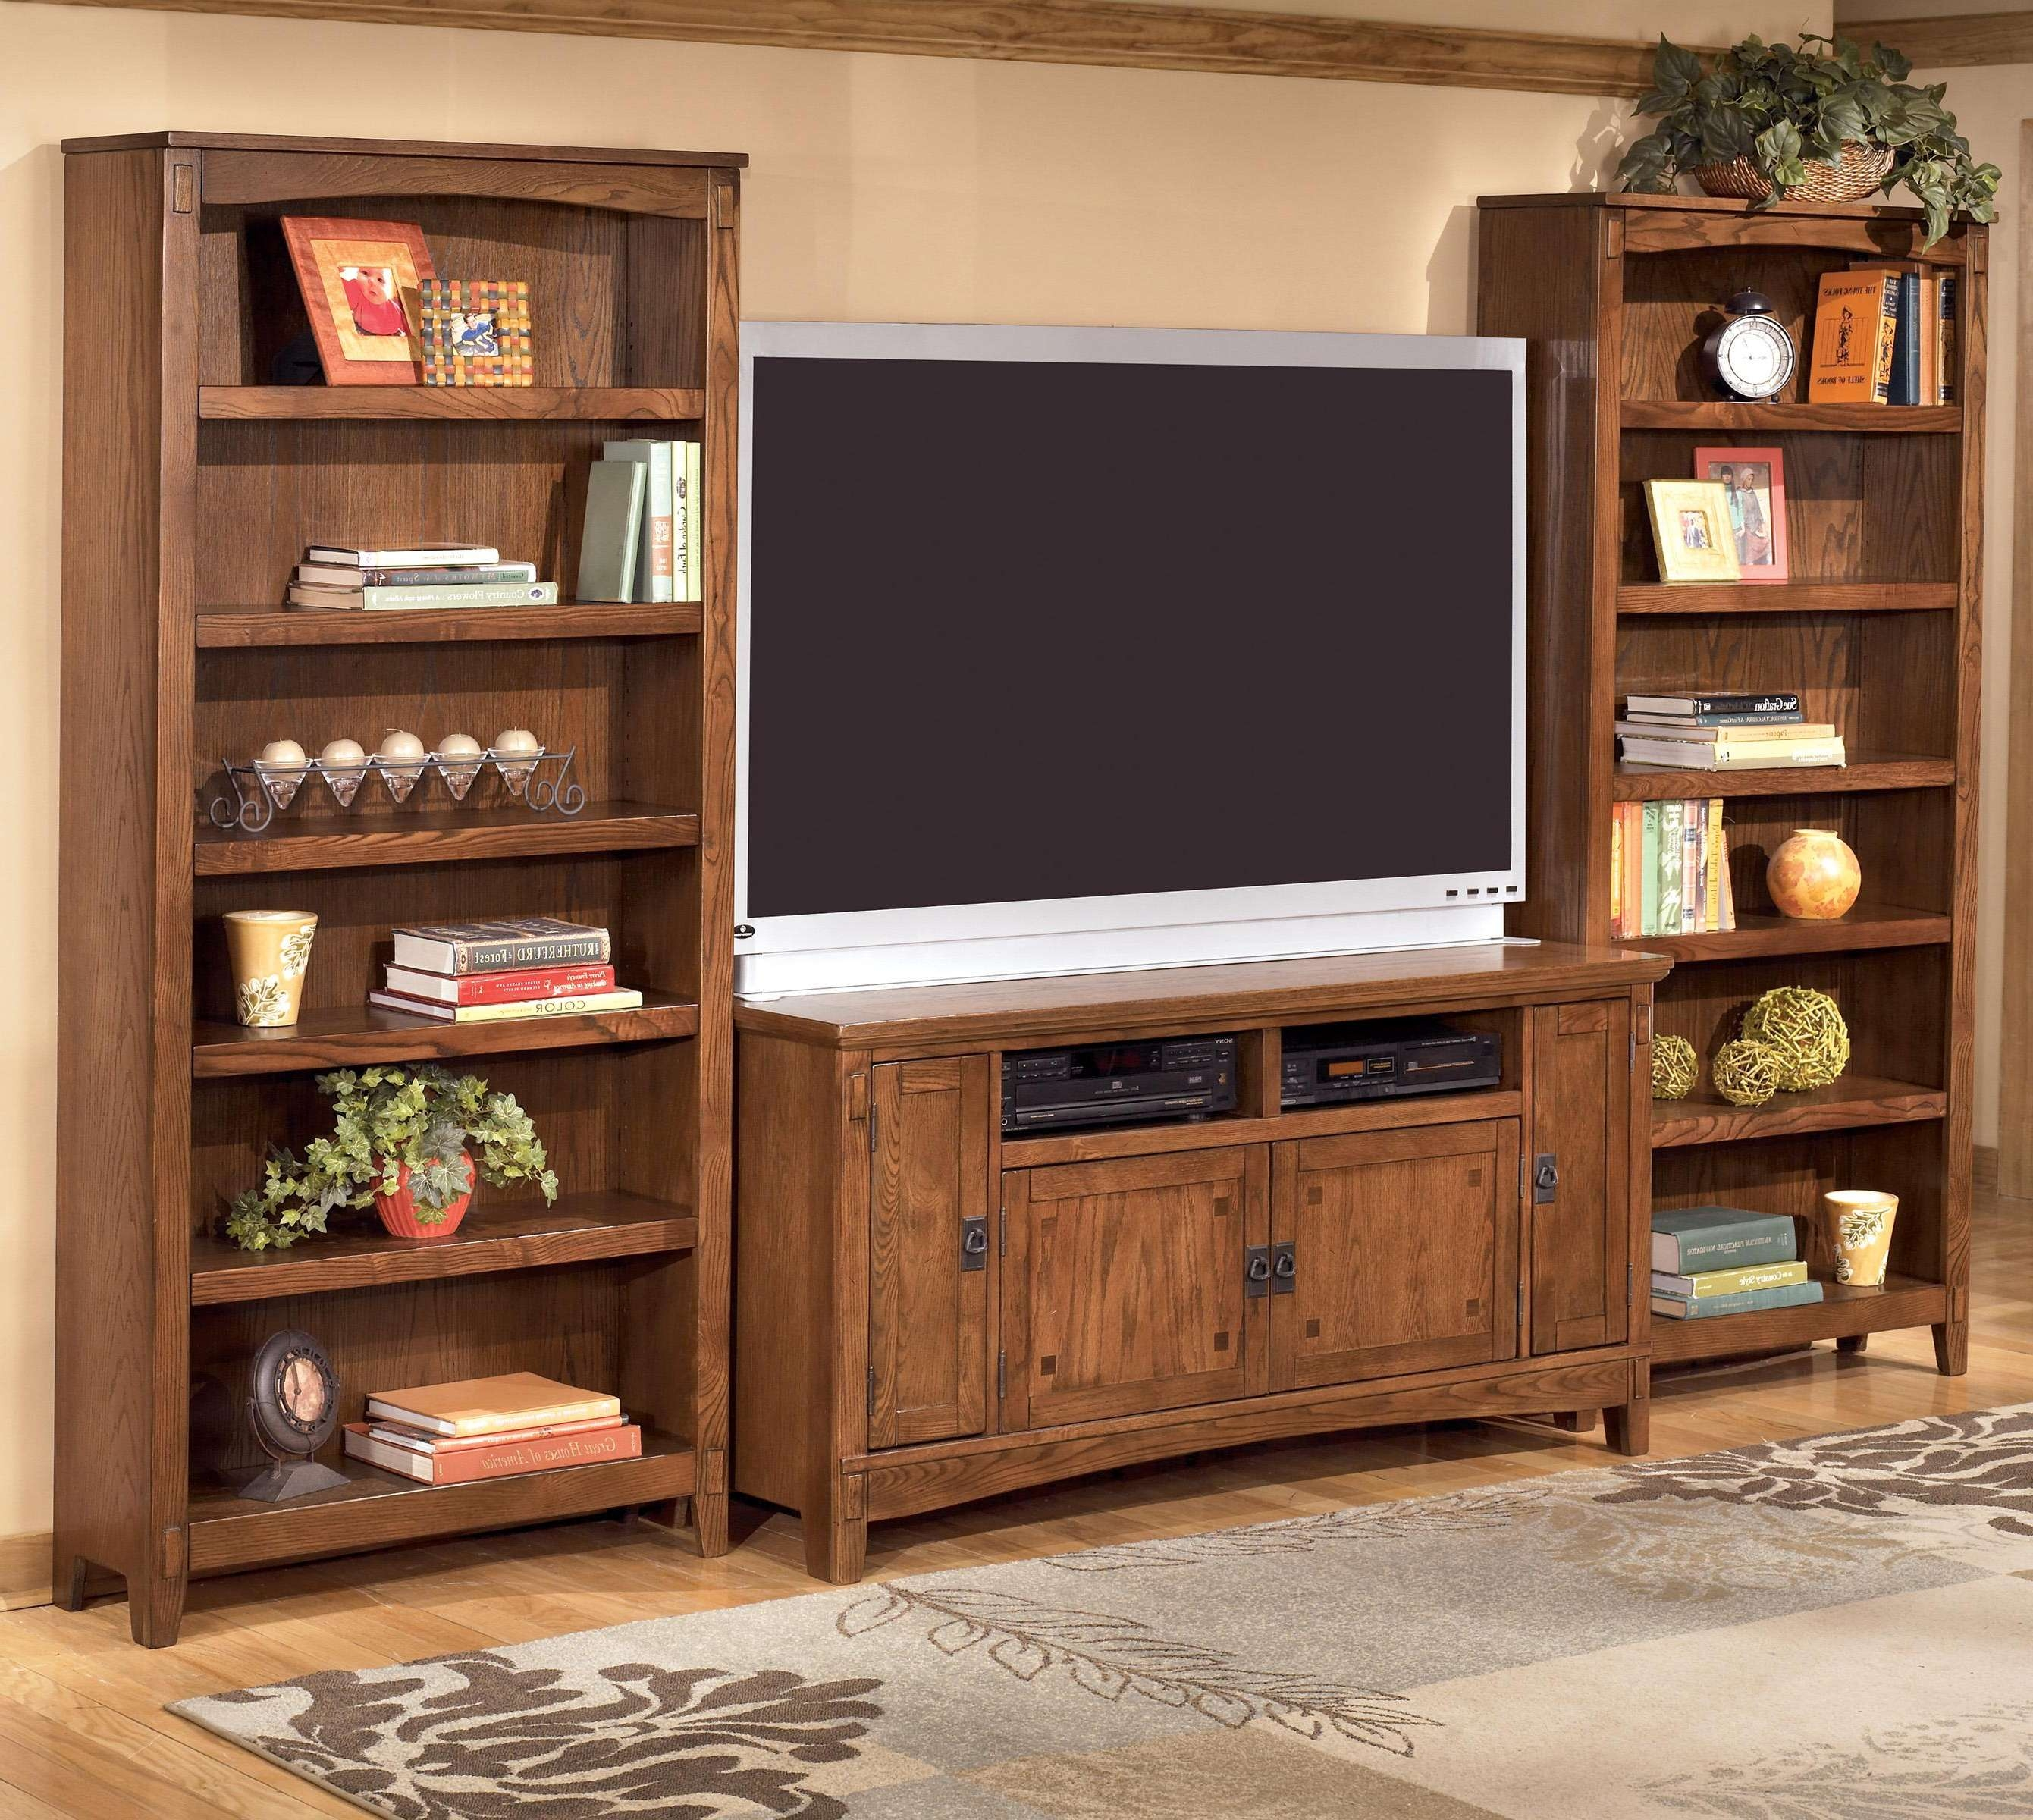 Wall Units: Astounding Tv Cabinet And Bookcase Corner Tv Cabinet Inside Bookshelf Tv Stands Combo (View 7 of 15)